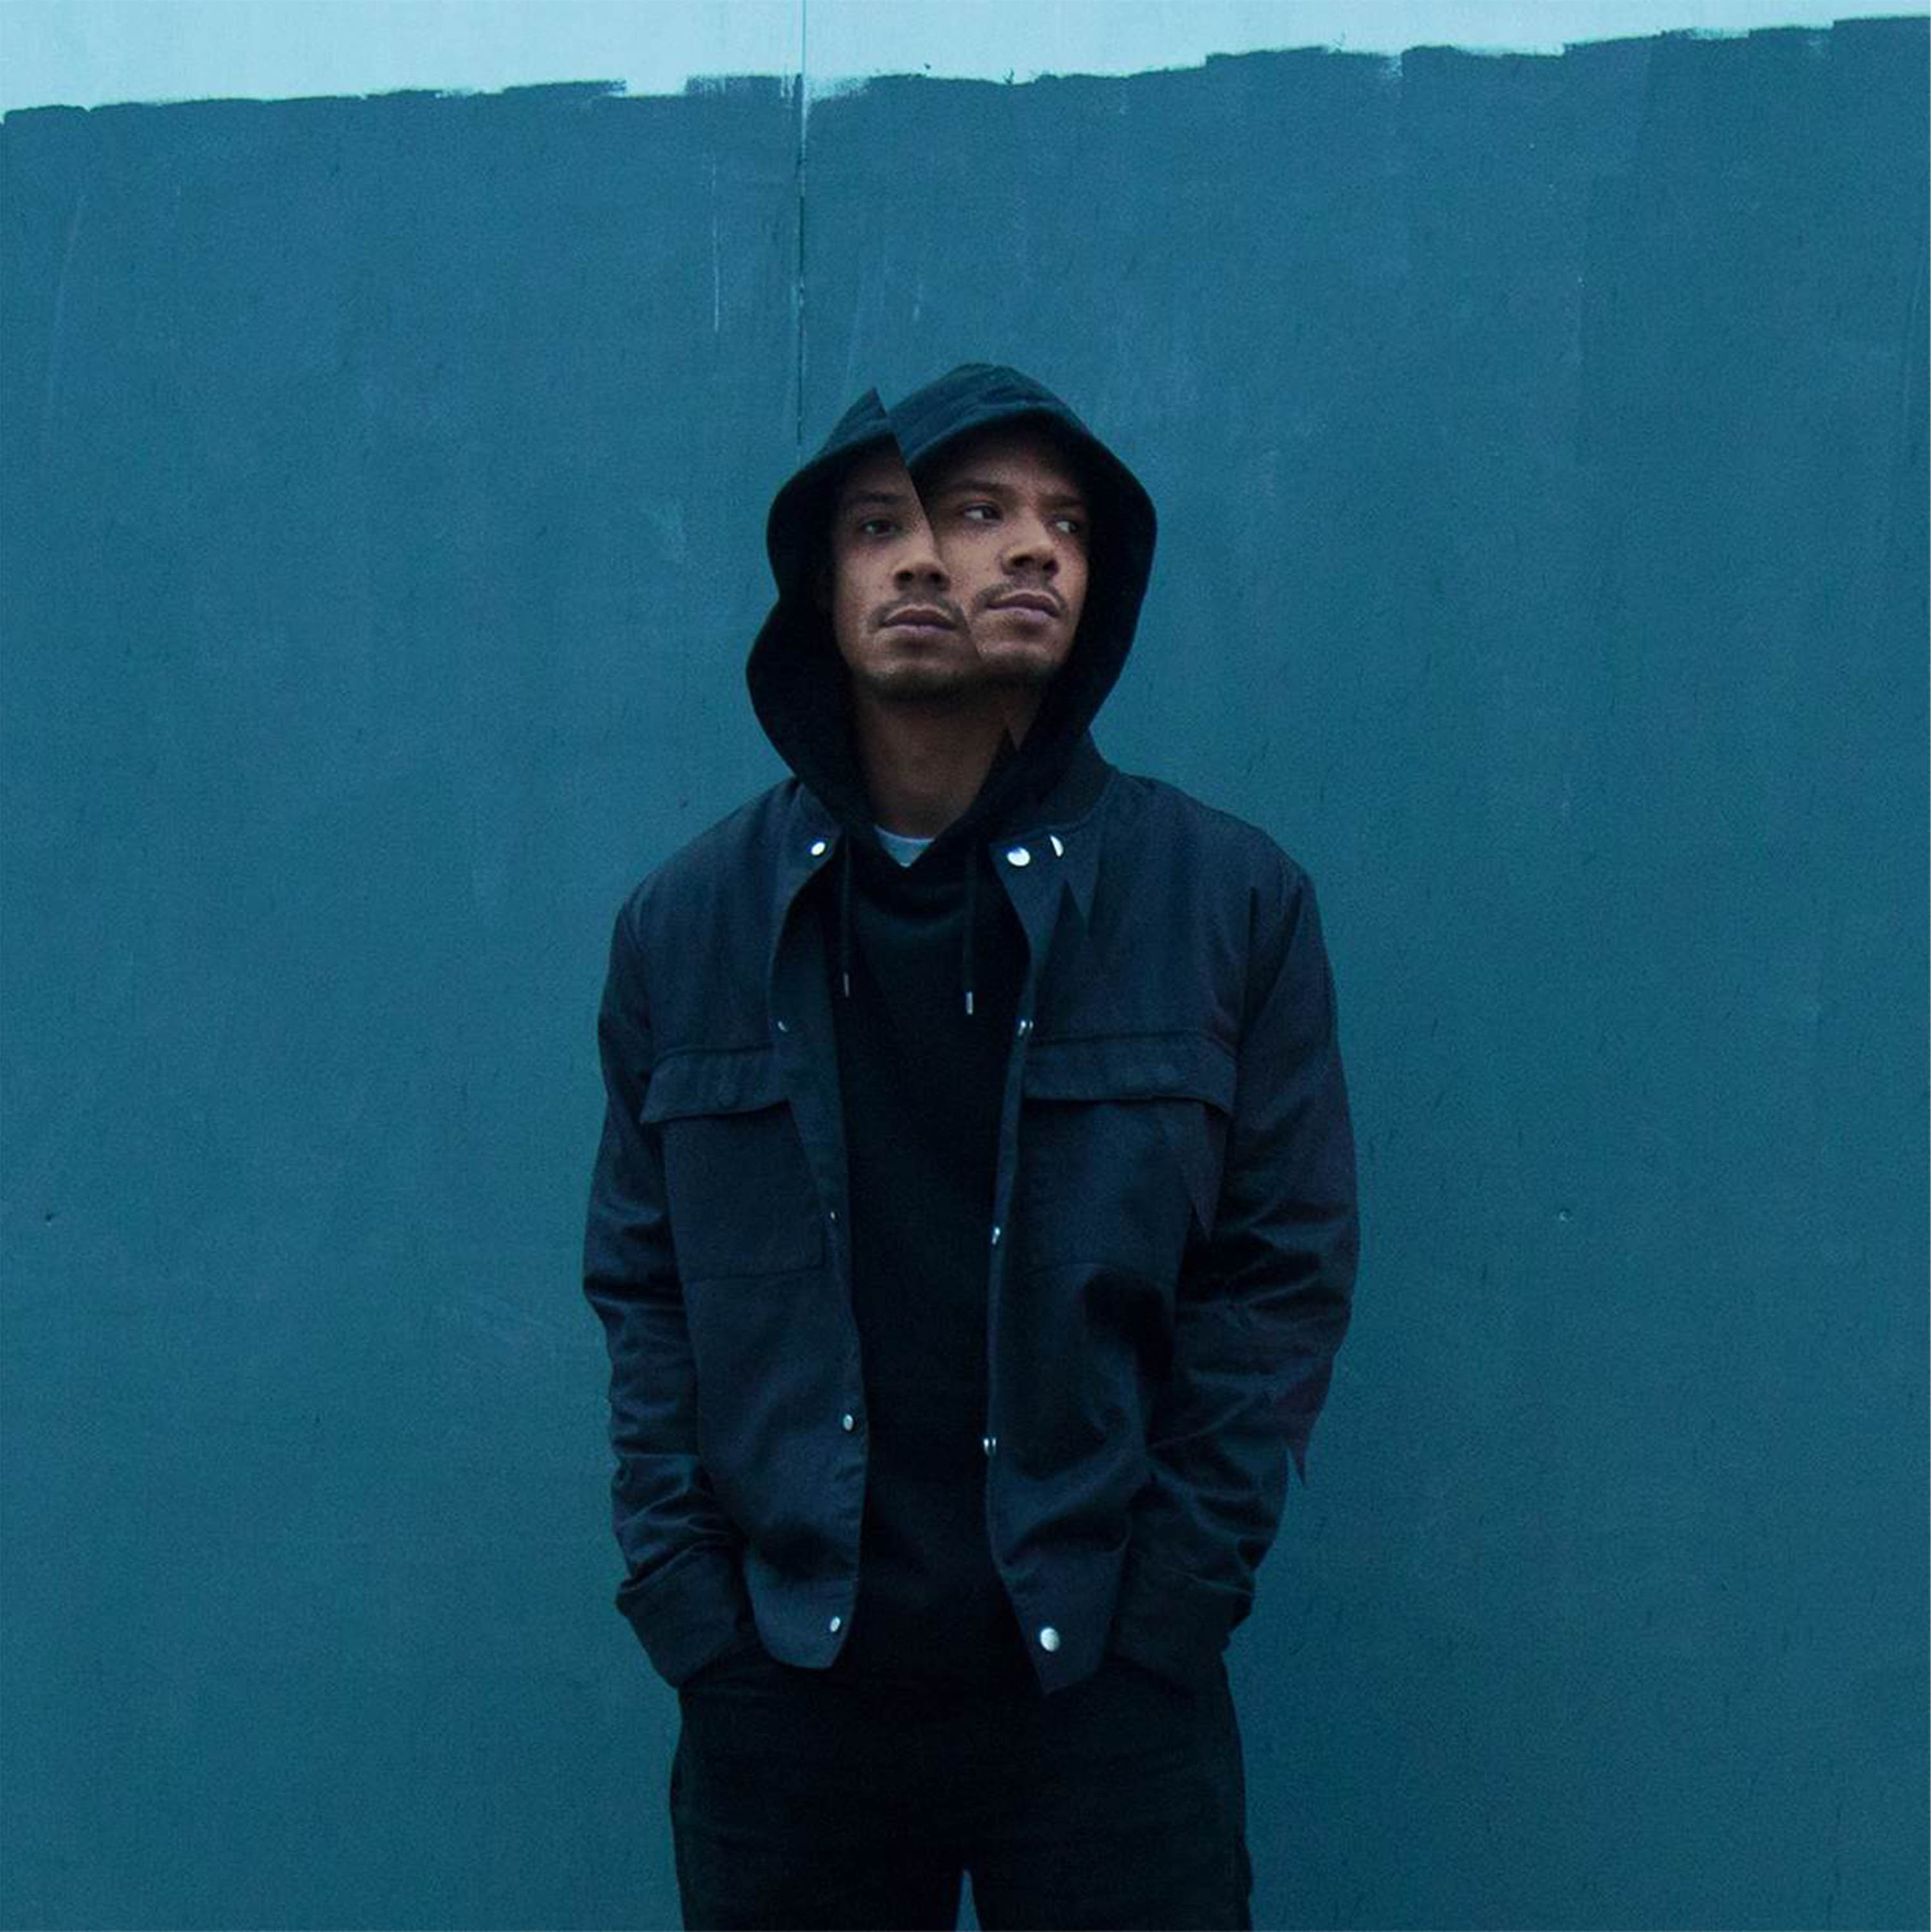 raleighritchie